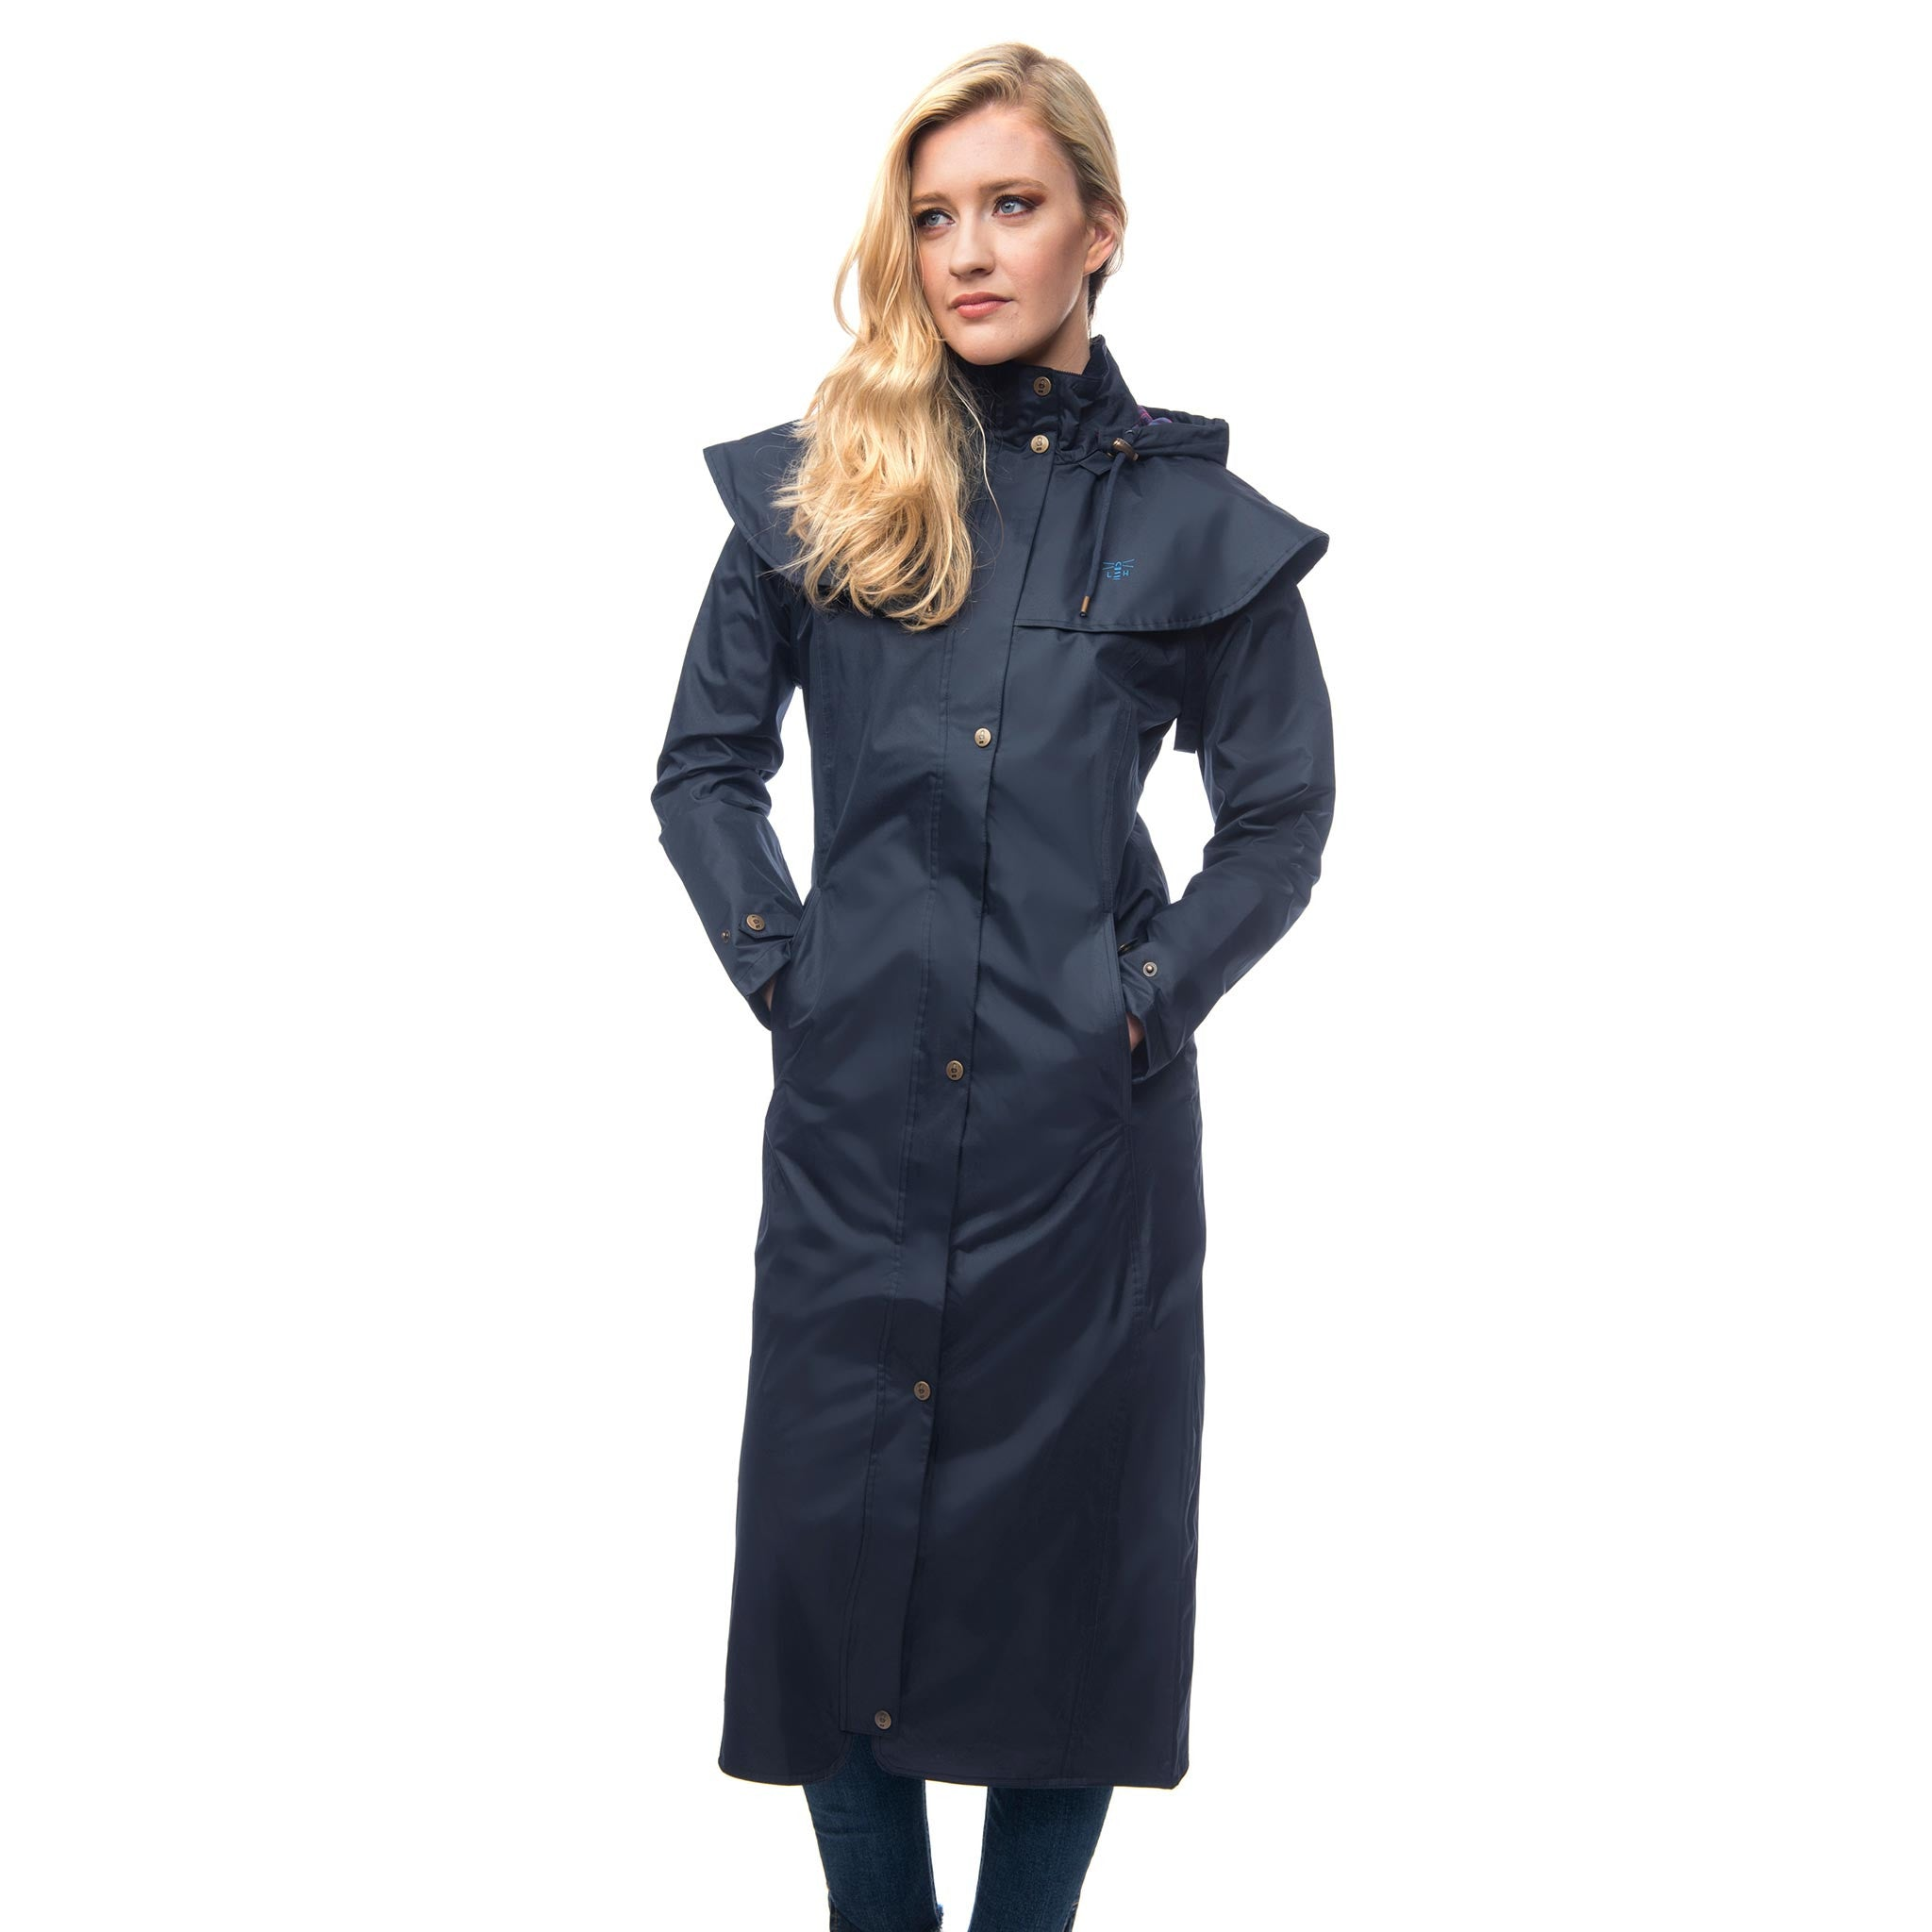 Lighthouse Womens Outback Full Length Waterproof Raincoat in Navy. Zipped and buttoned. Hands in pockets.